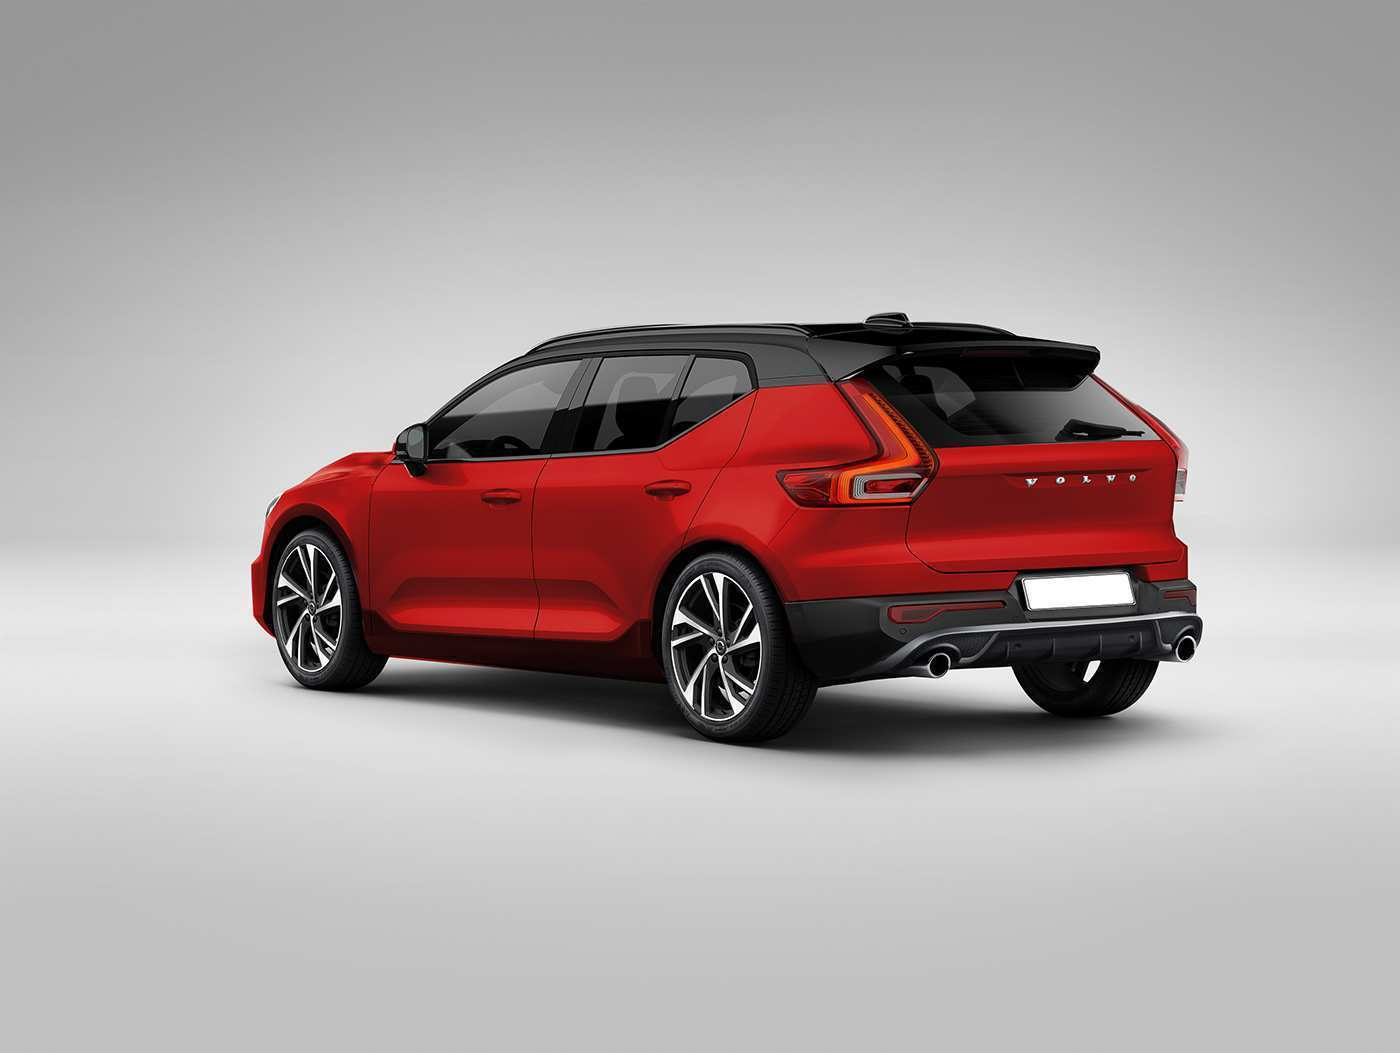 79 Concept of Volvo V40 2020 History with Volvo V40 2020